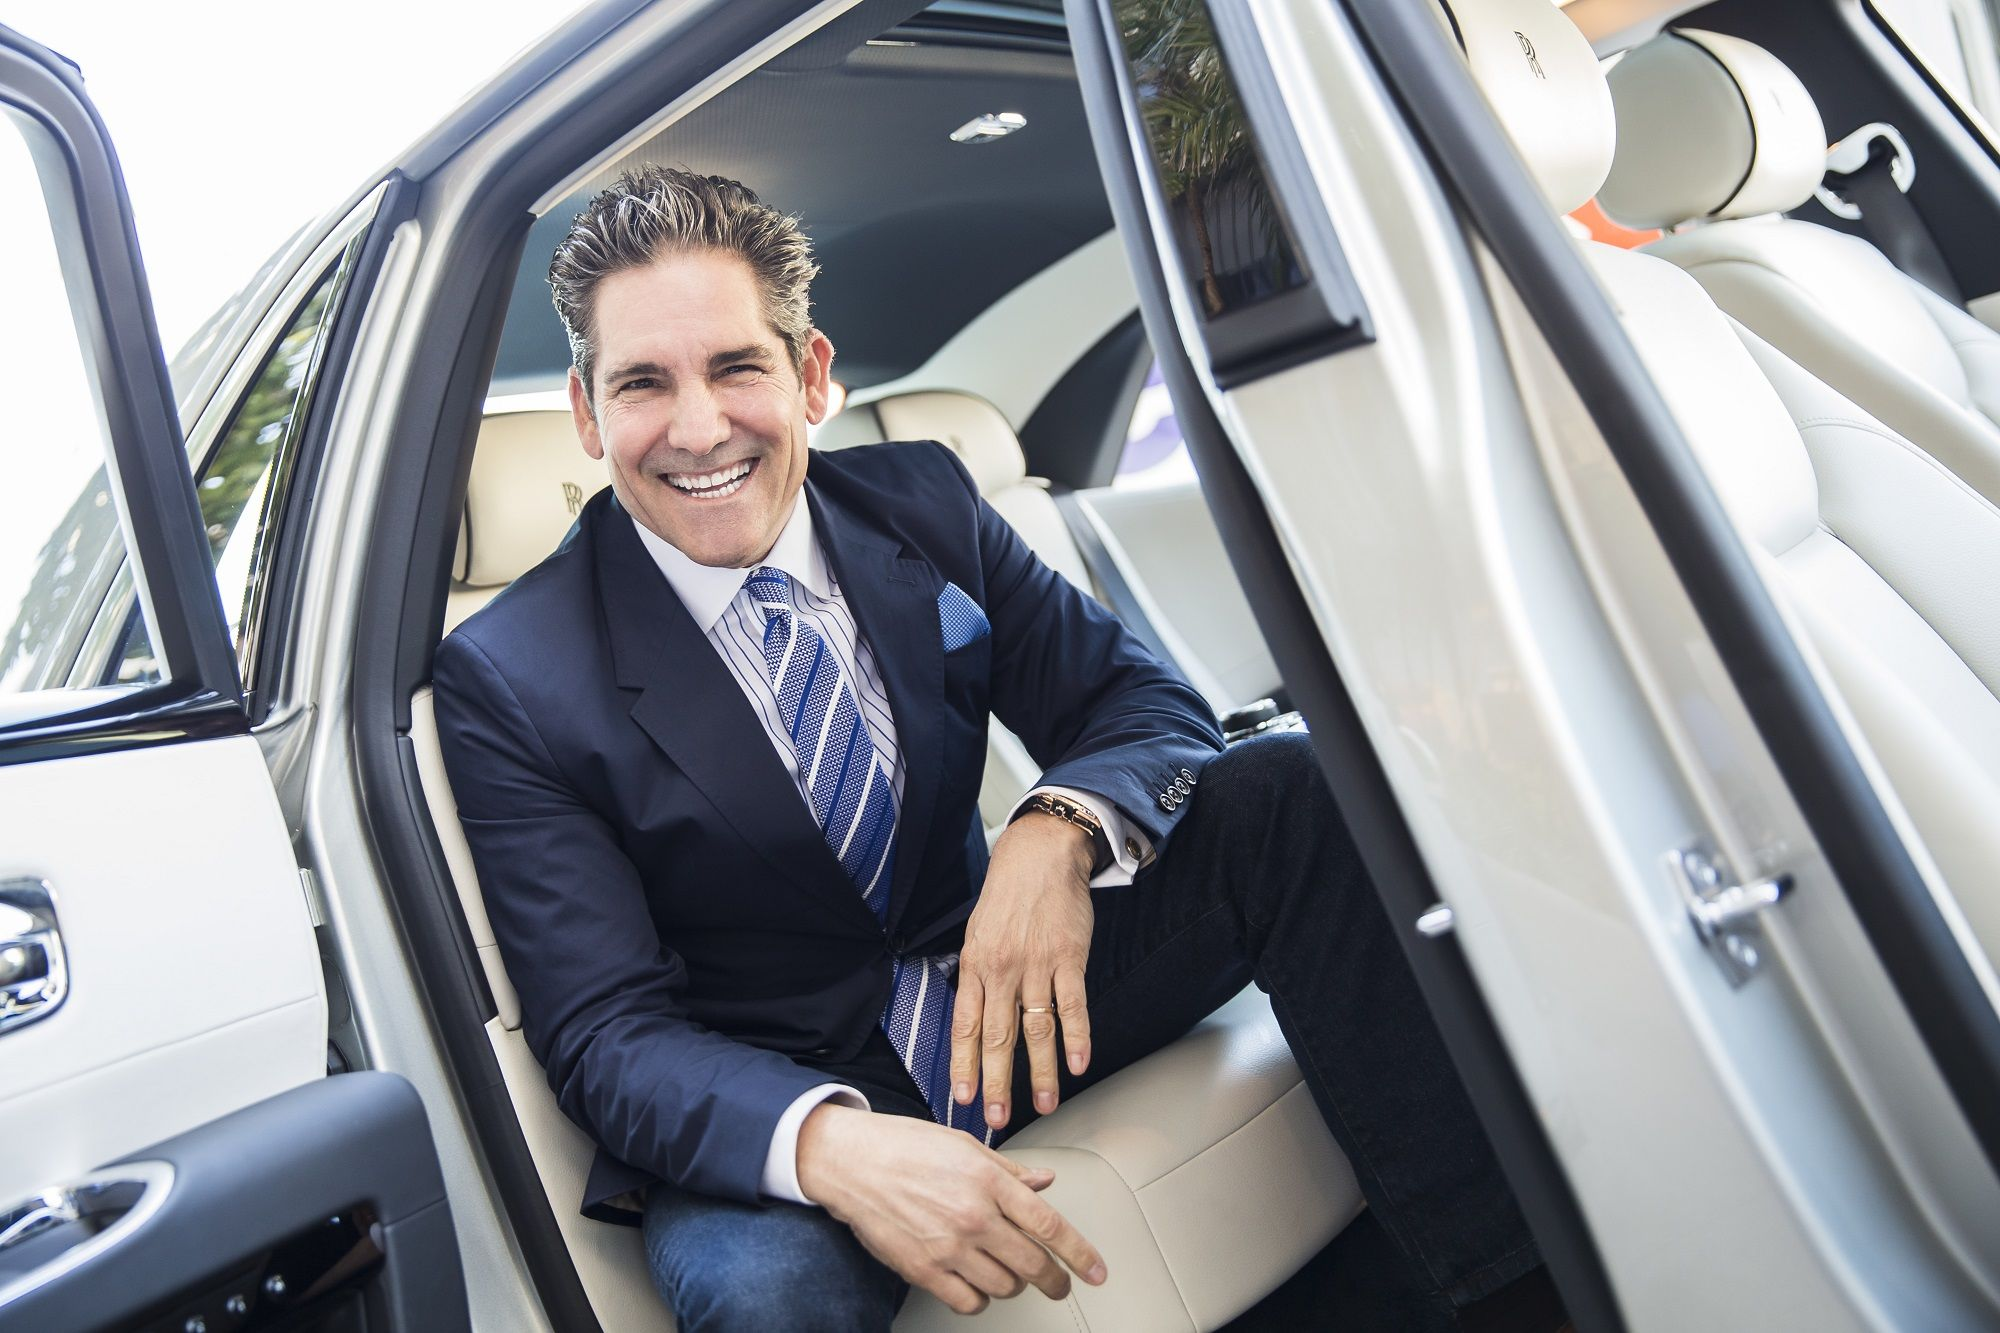 Grant Cardone Biography – Net Worth, Wiki, Wife, University & More